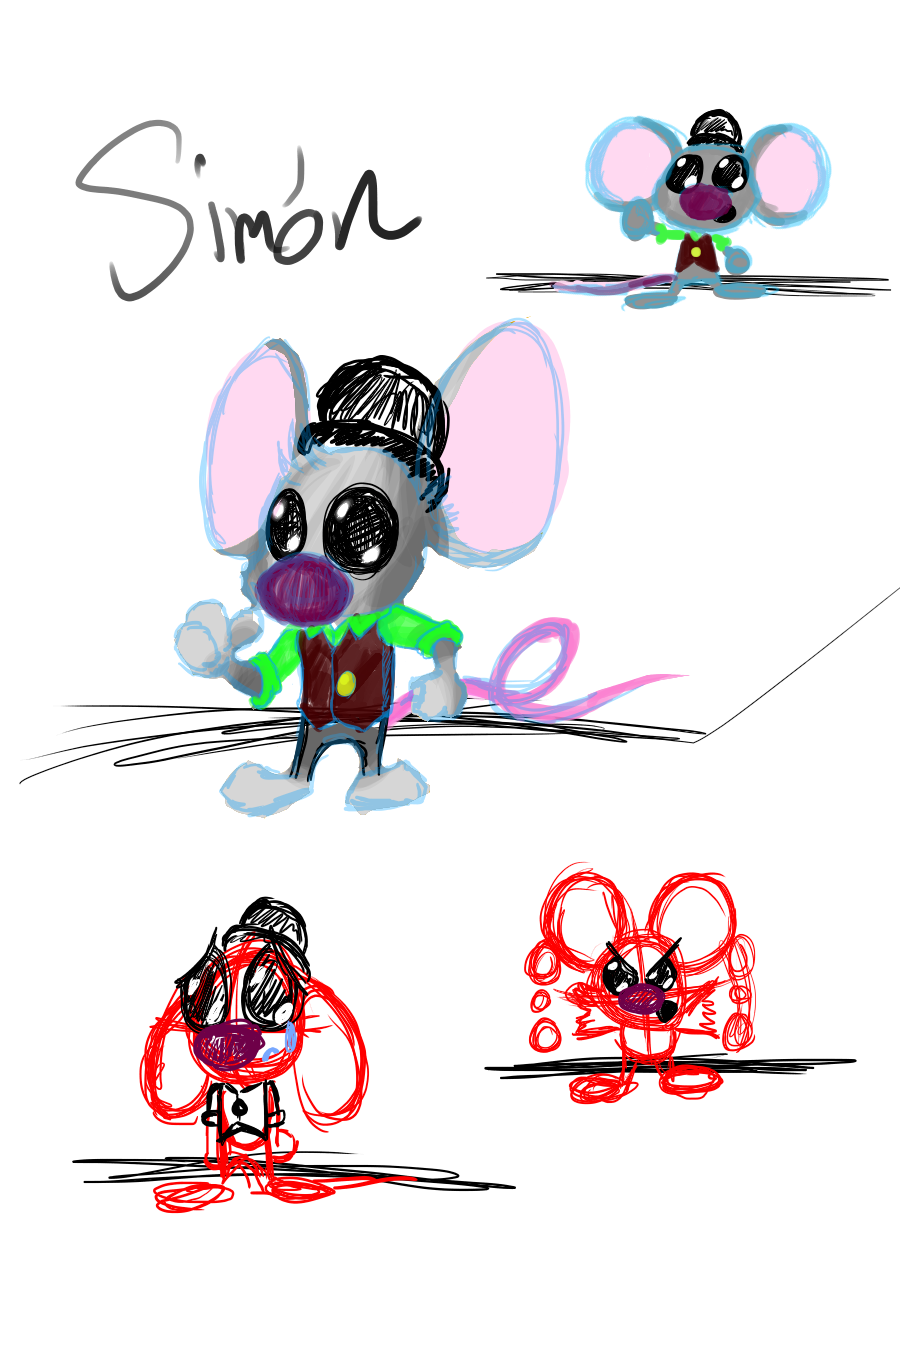 Day 1 simon le mouse